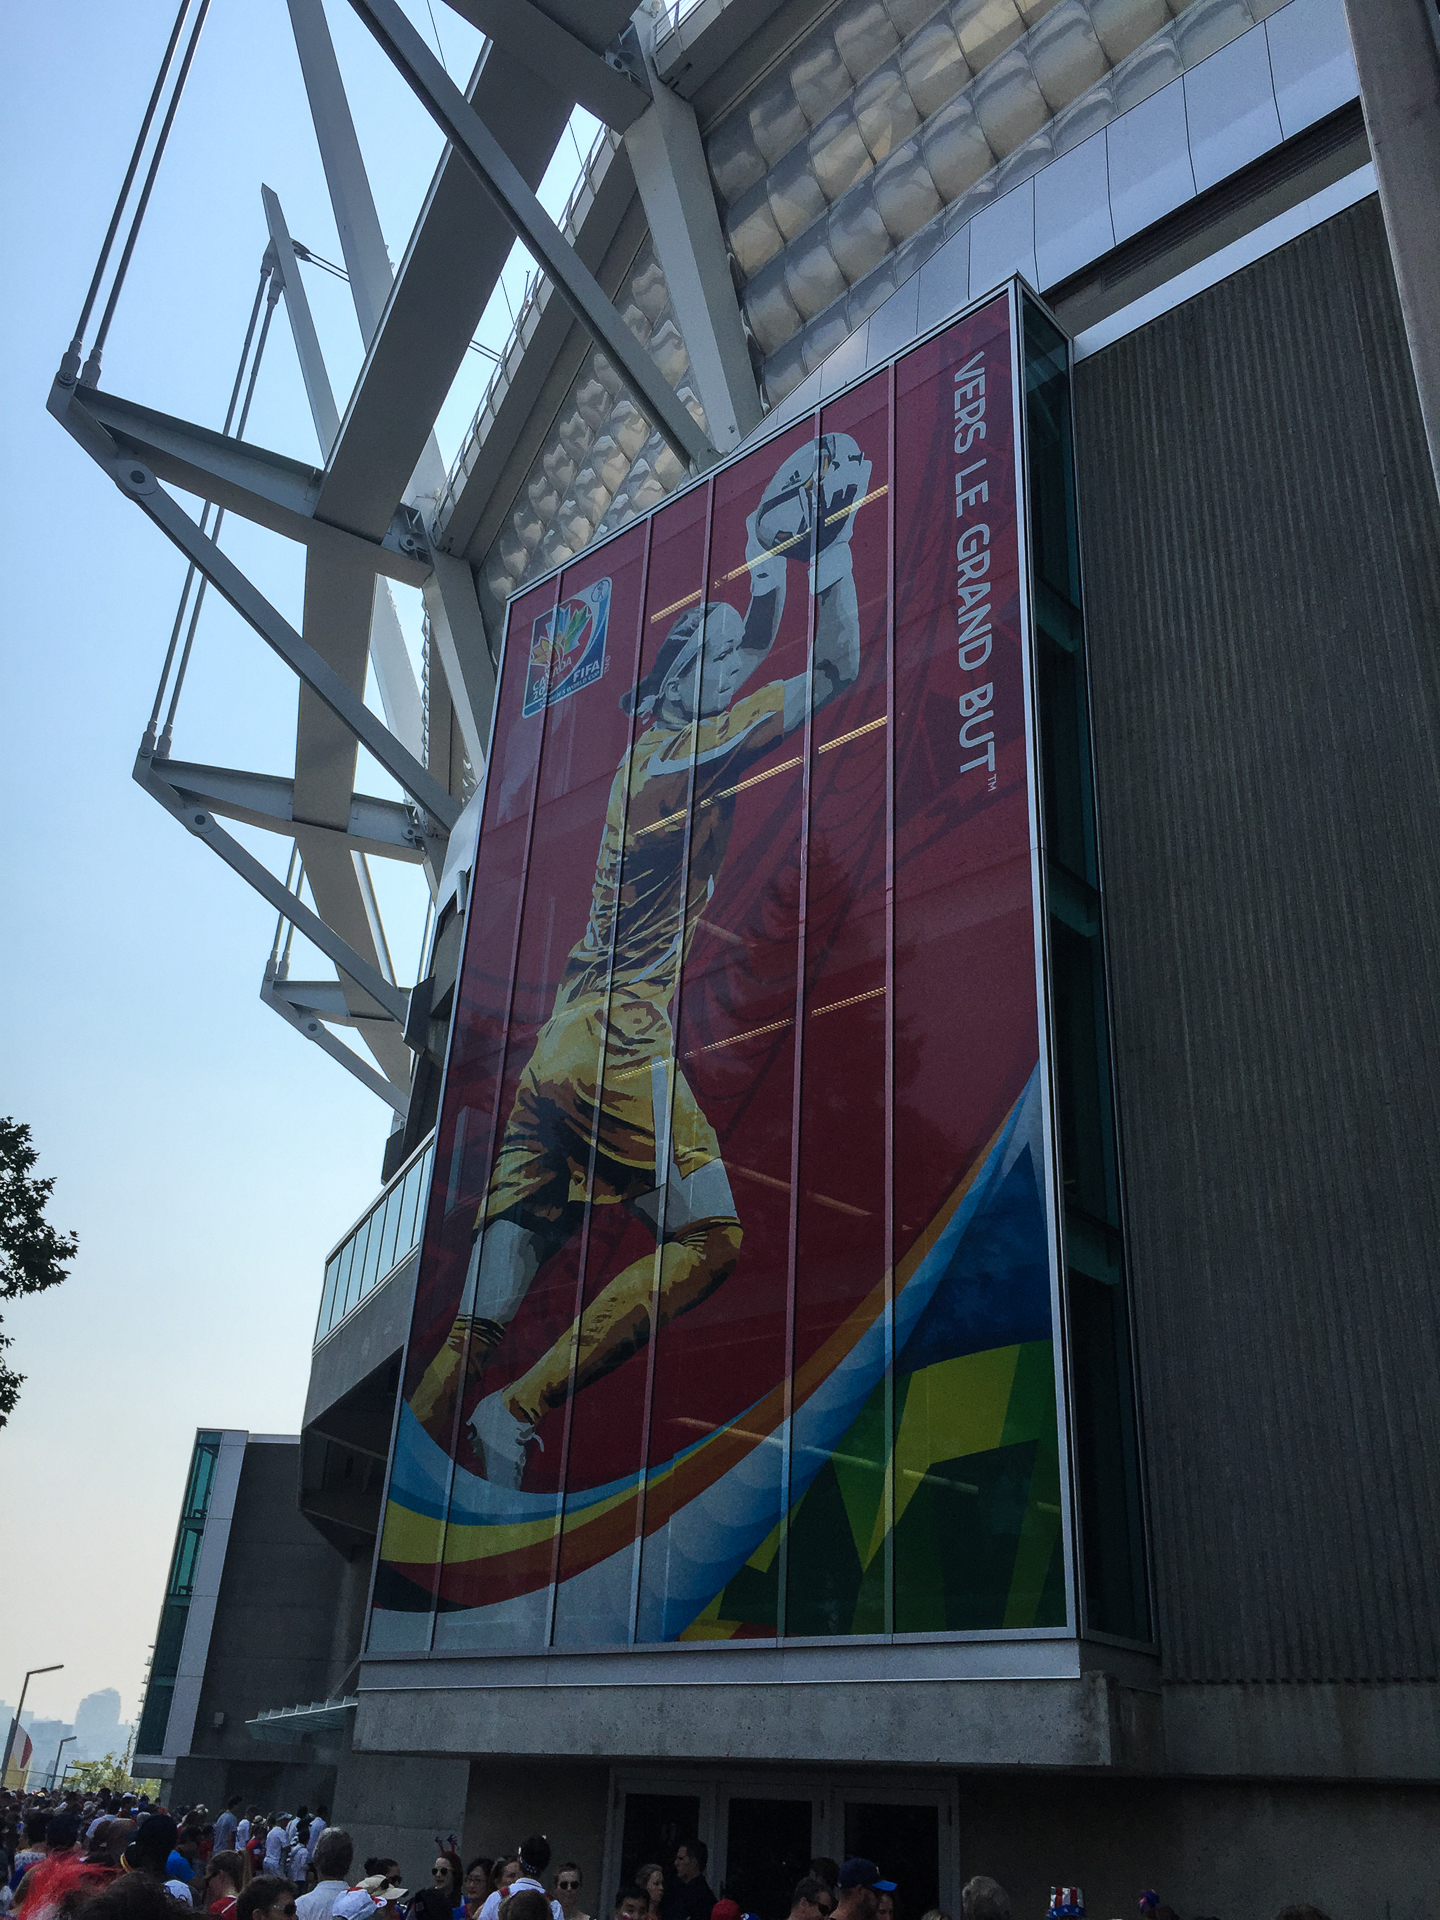 More cool banners